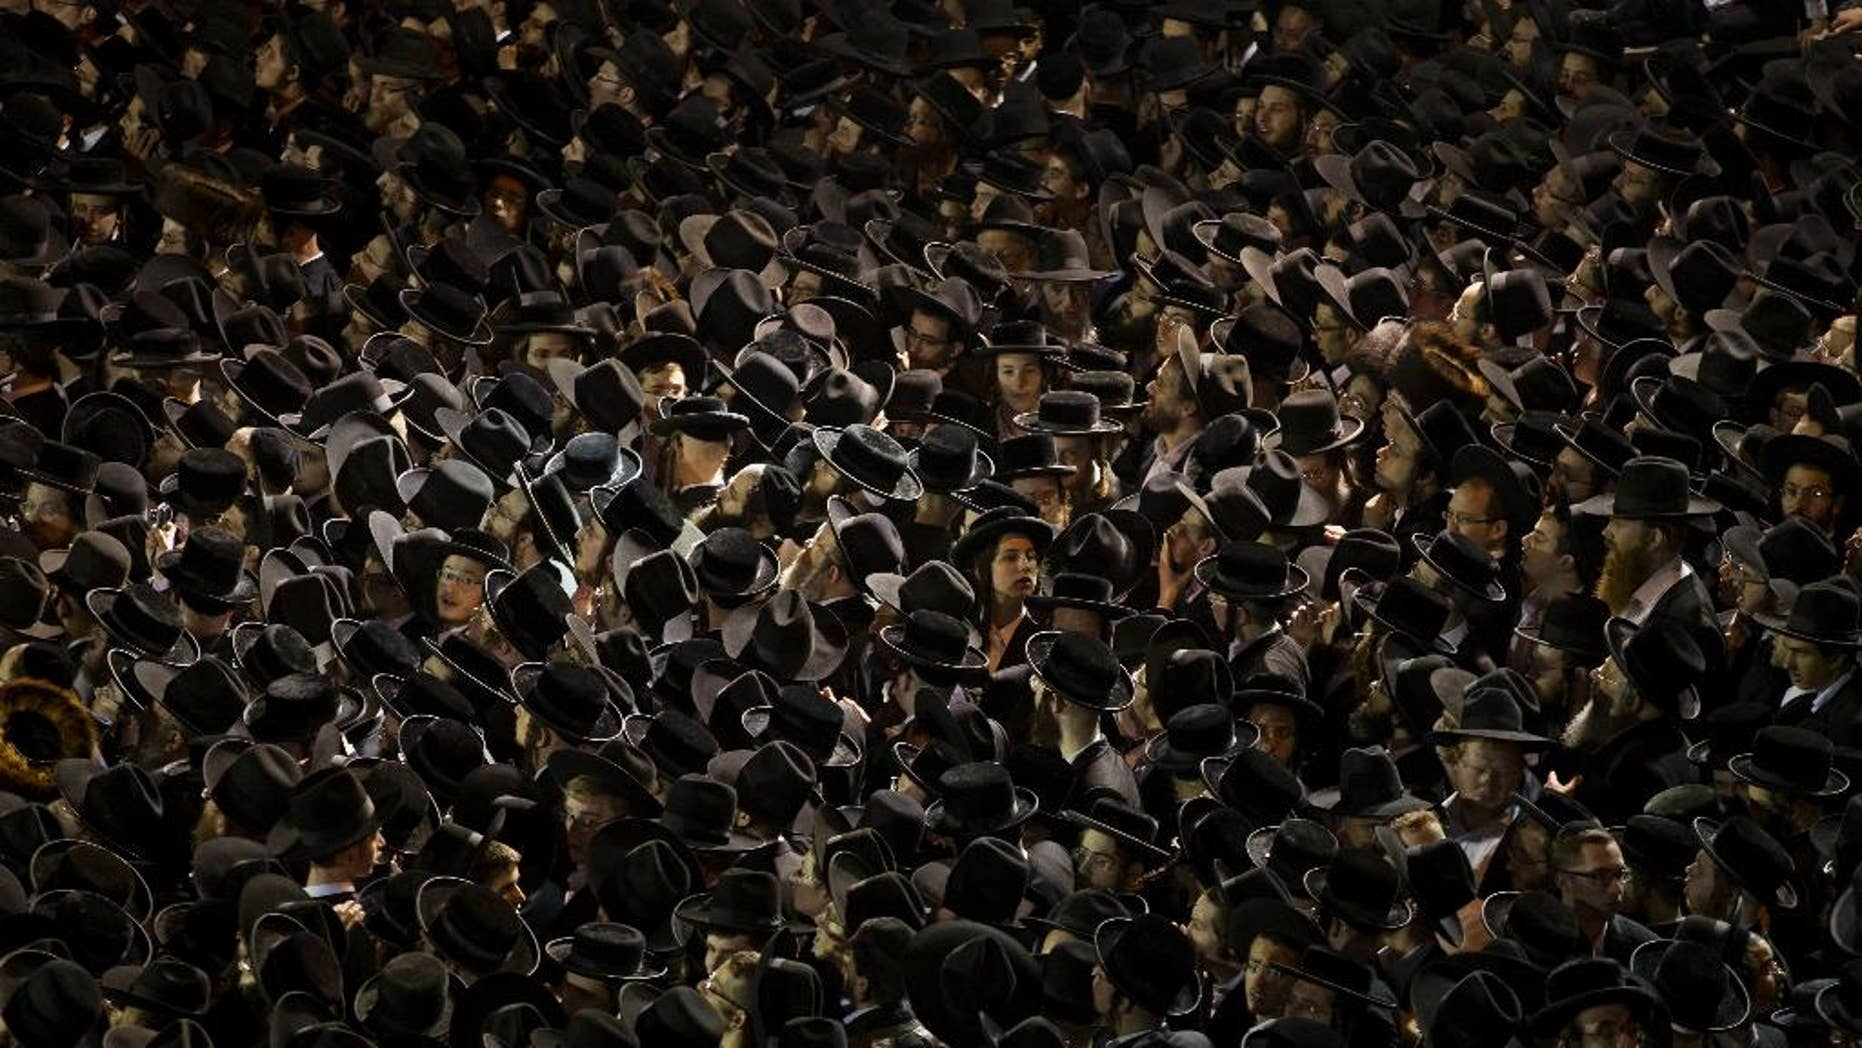 FILE - In this Thursday, May 16, 2013 file photo, thousands of ultra-Orthodox Jews gather near an Israeli Defense Forces recruitment center during a protest against military conscription of yeshiva students, in Jerusalem. The formation of Benjamin Netanyahu's new coalition government has cleared the way for the country's ultra-Orthodox parties to return to power after two years in the opposition. This religious resurgence could have deep implications as they seek to reinstate a system of subsidies and preferential treatment that have long angered the country's secular majority, potentially setting the stage for a new round of culture wars that recently have plagued Israel. (AP Photo/Bernat Armangue, File)